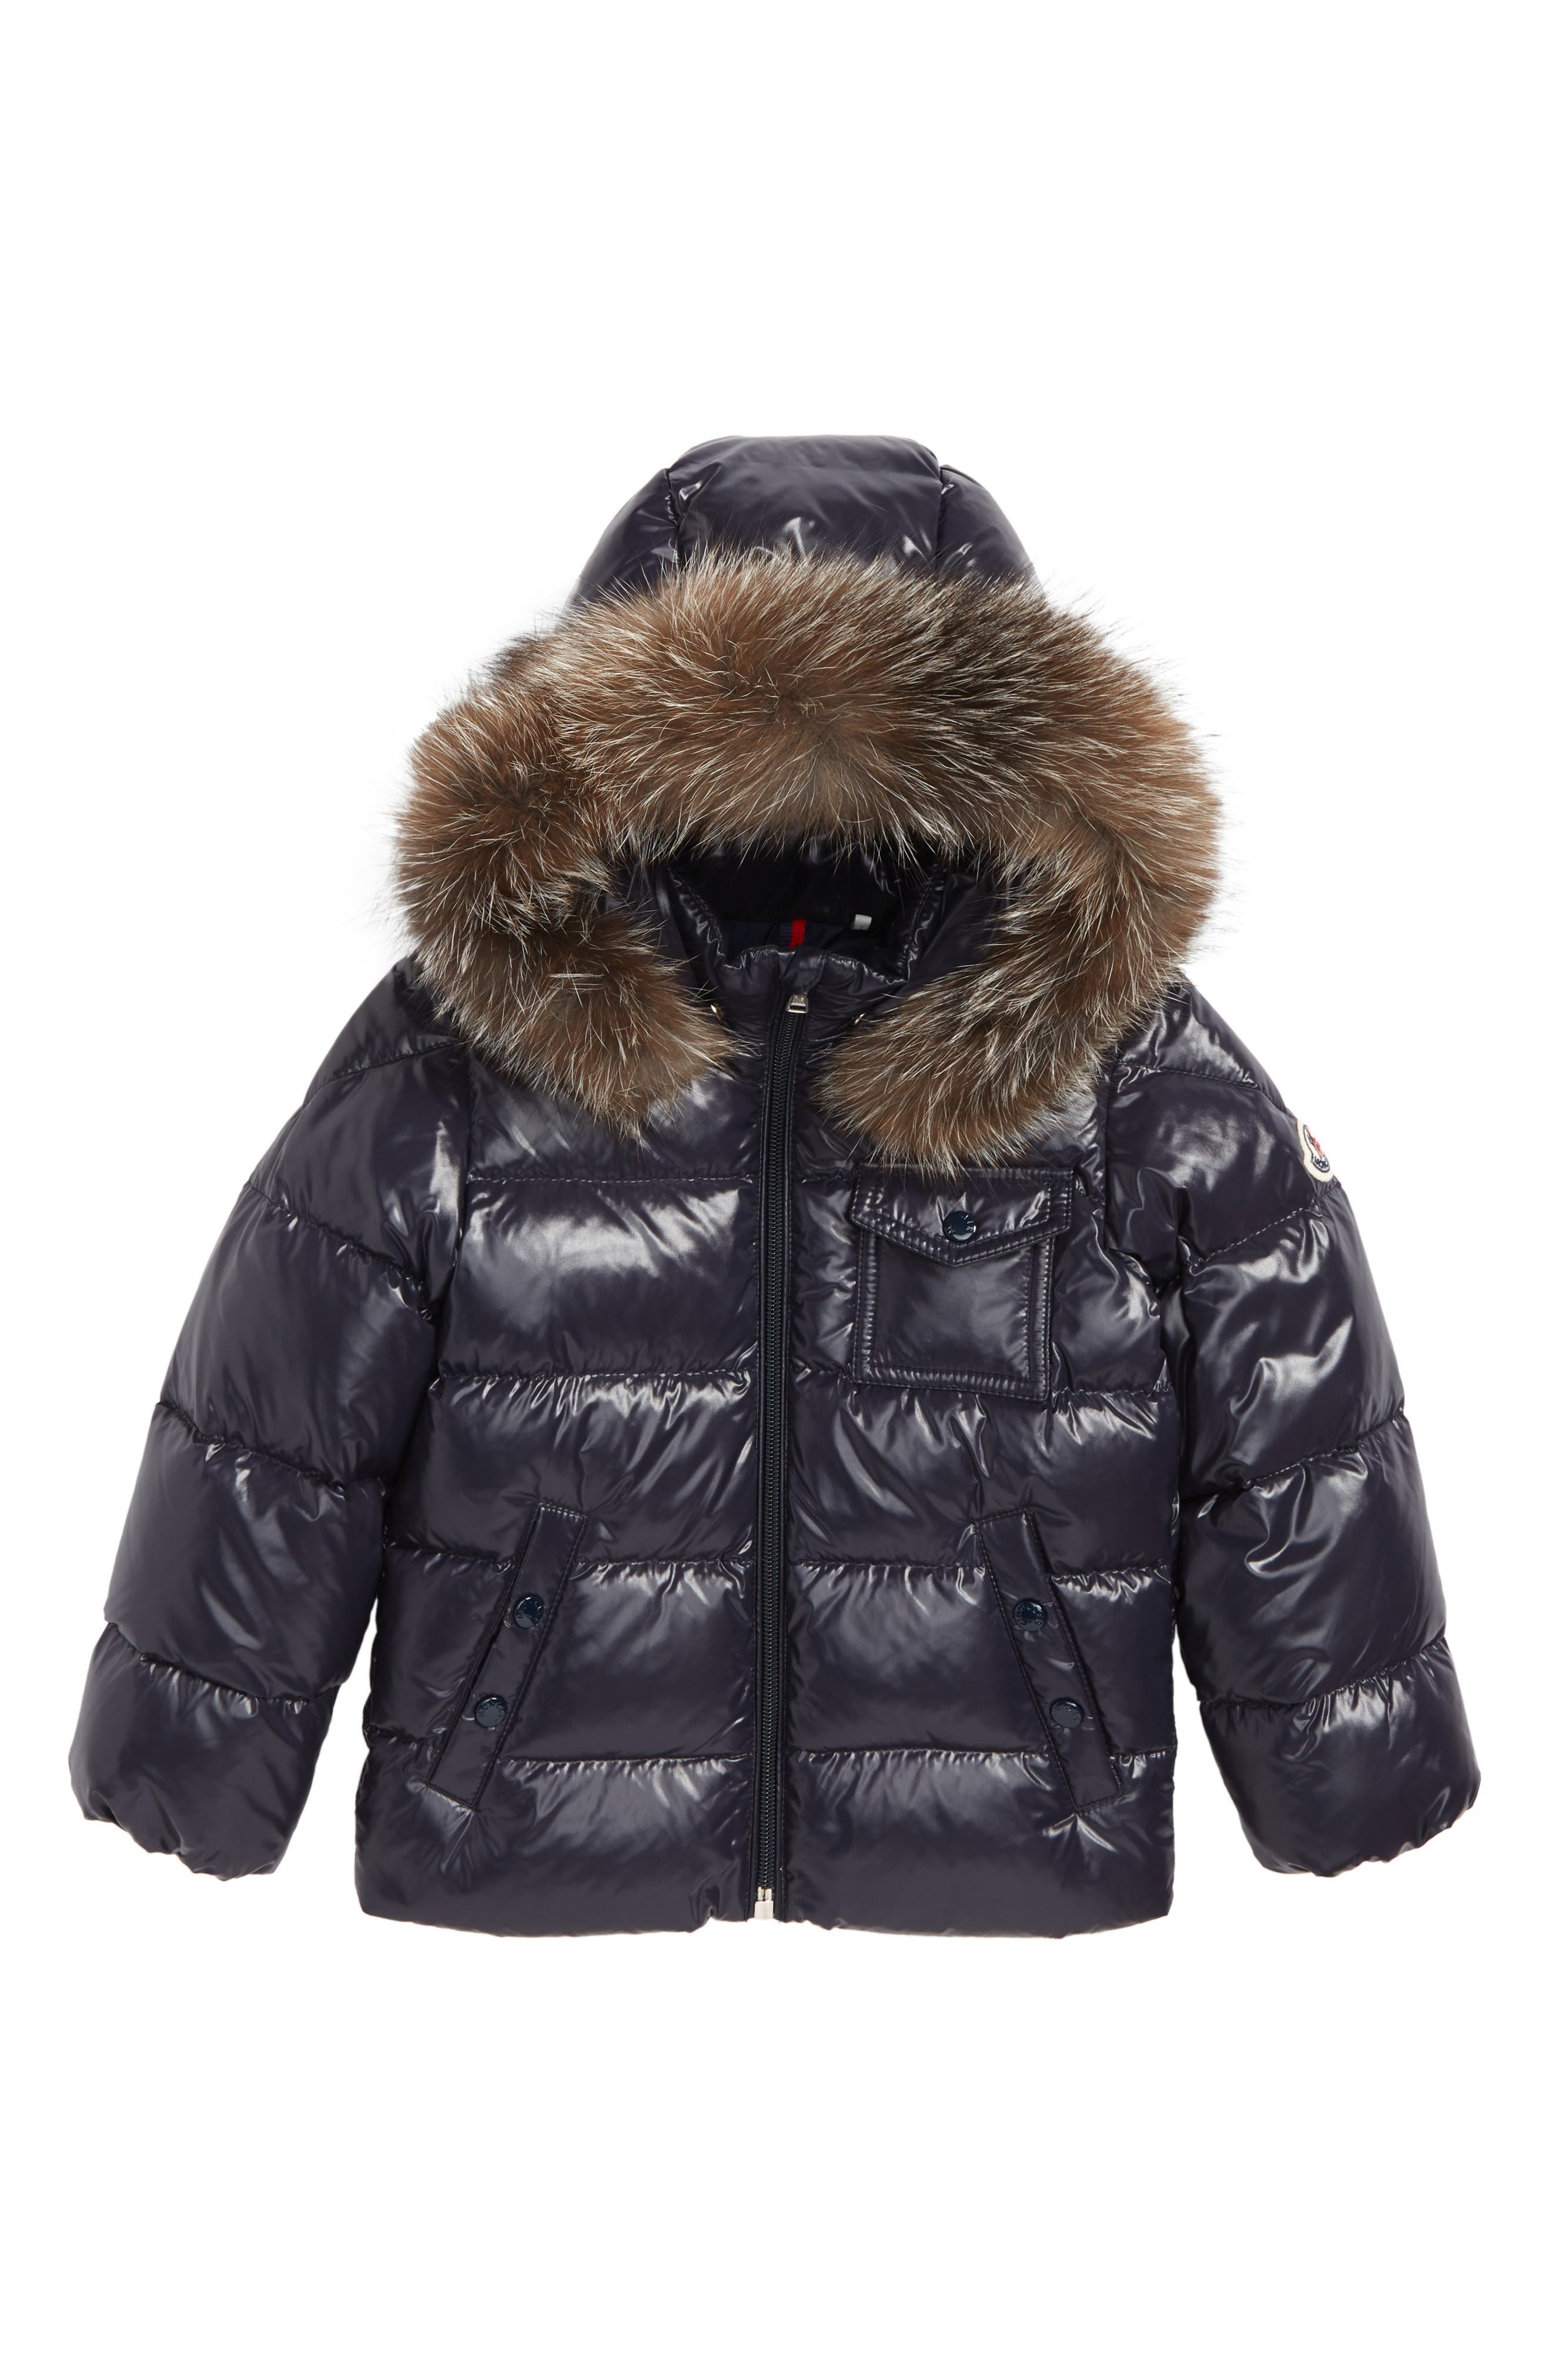 MONCLER, K2 Water Resistant Hooded Down Jacket with Genuine Fox Fur Trim, Main thumbnail 1, color, NAVY